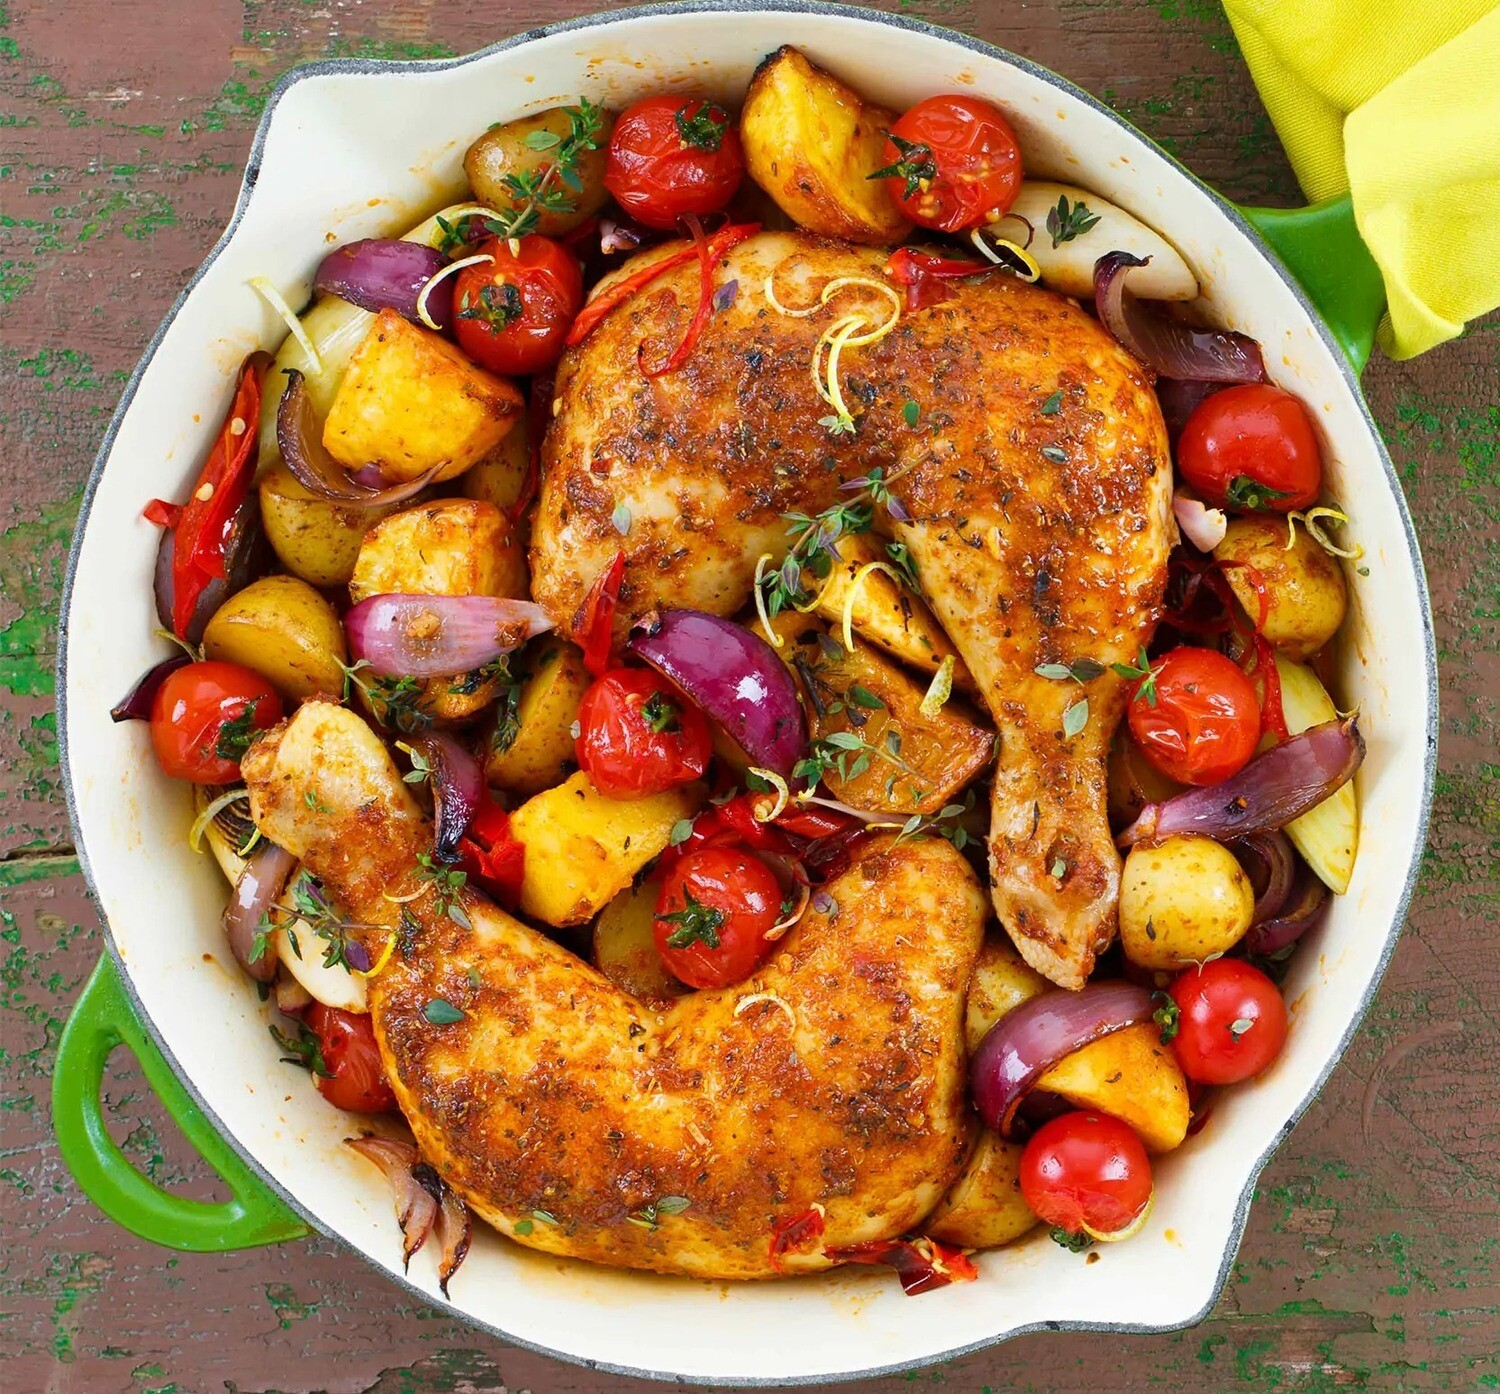 BAKED CHICKEN WITH VEGGIES